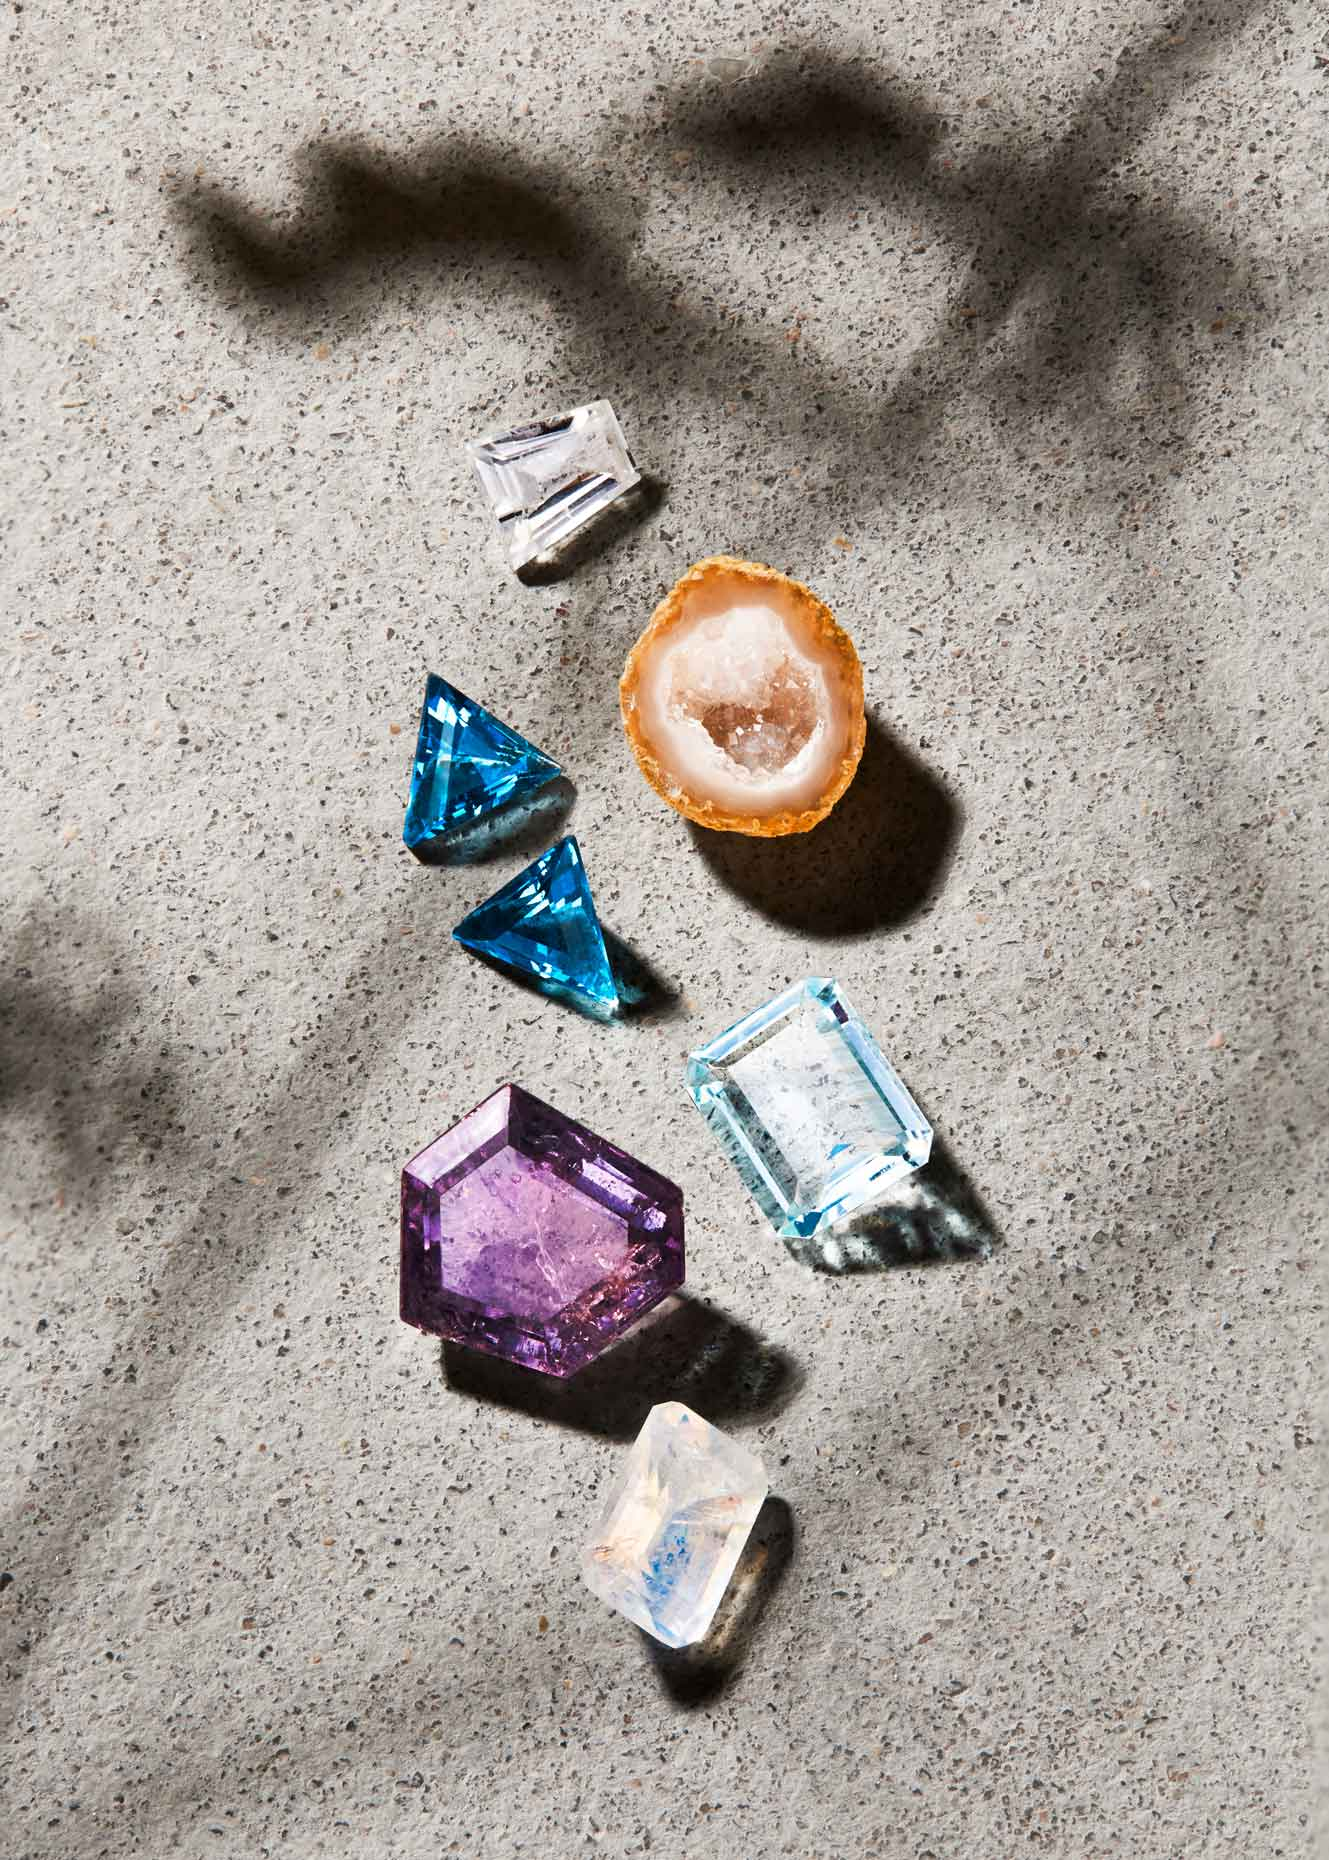 Rick-Holbrook-Jewelry-Photographer-King-Curated-Gemstones-3